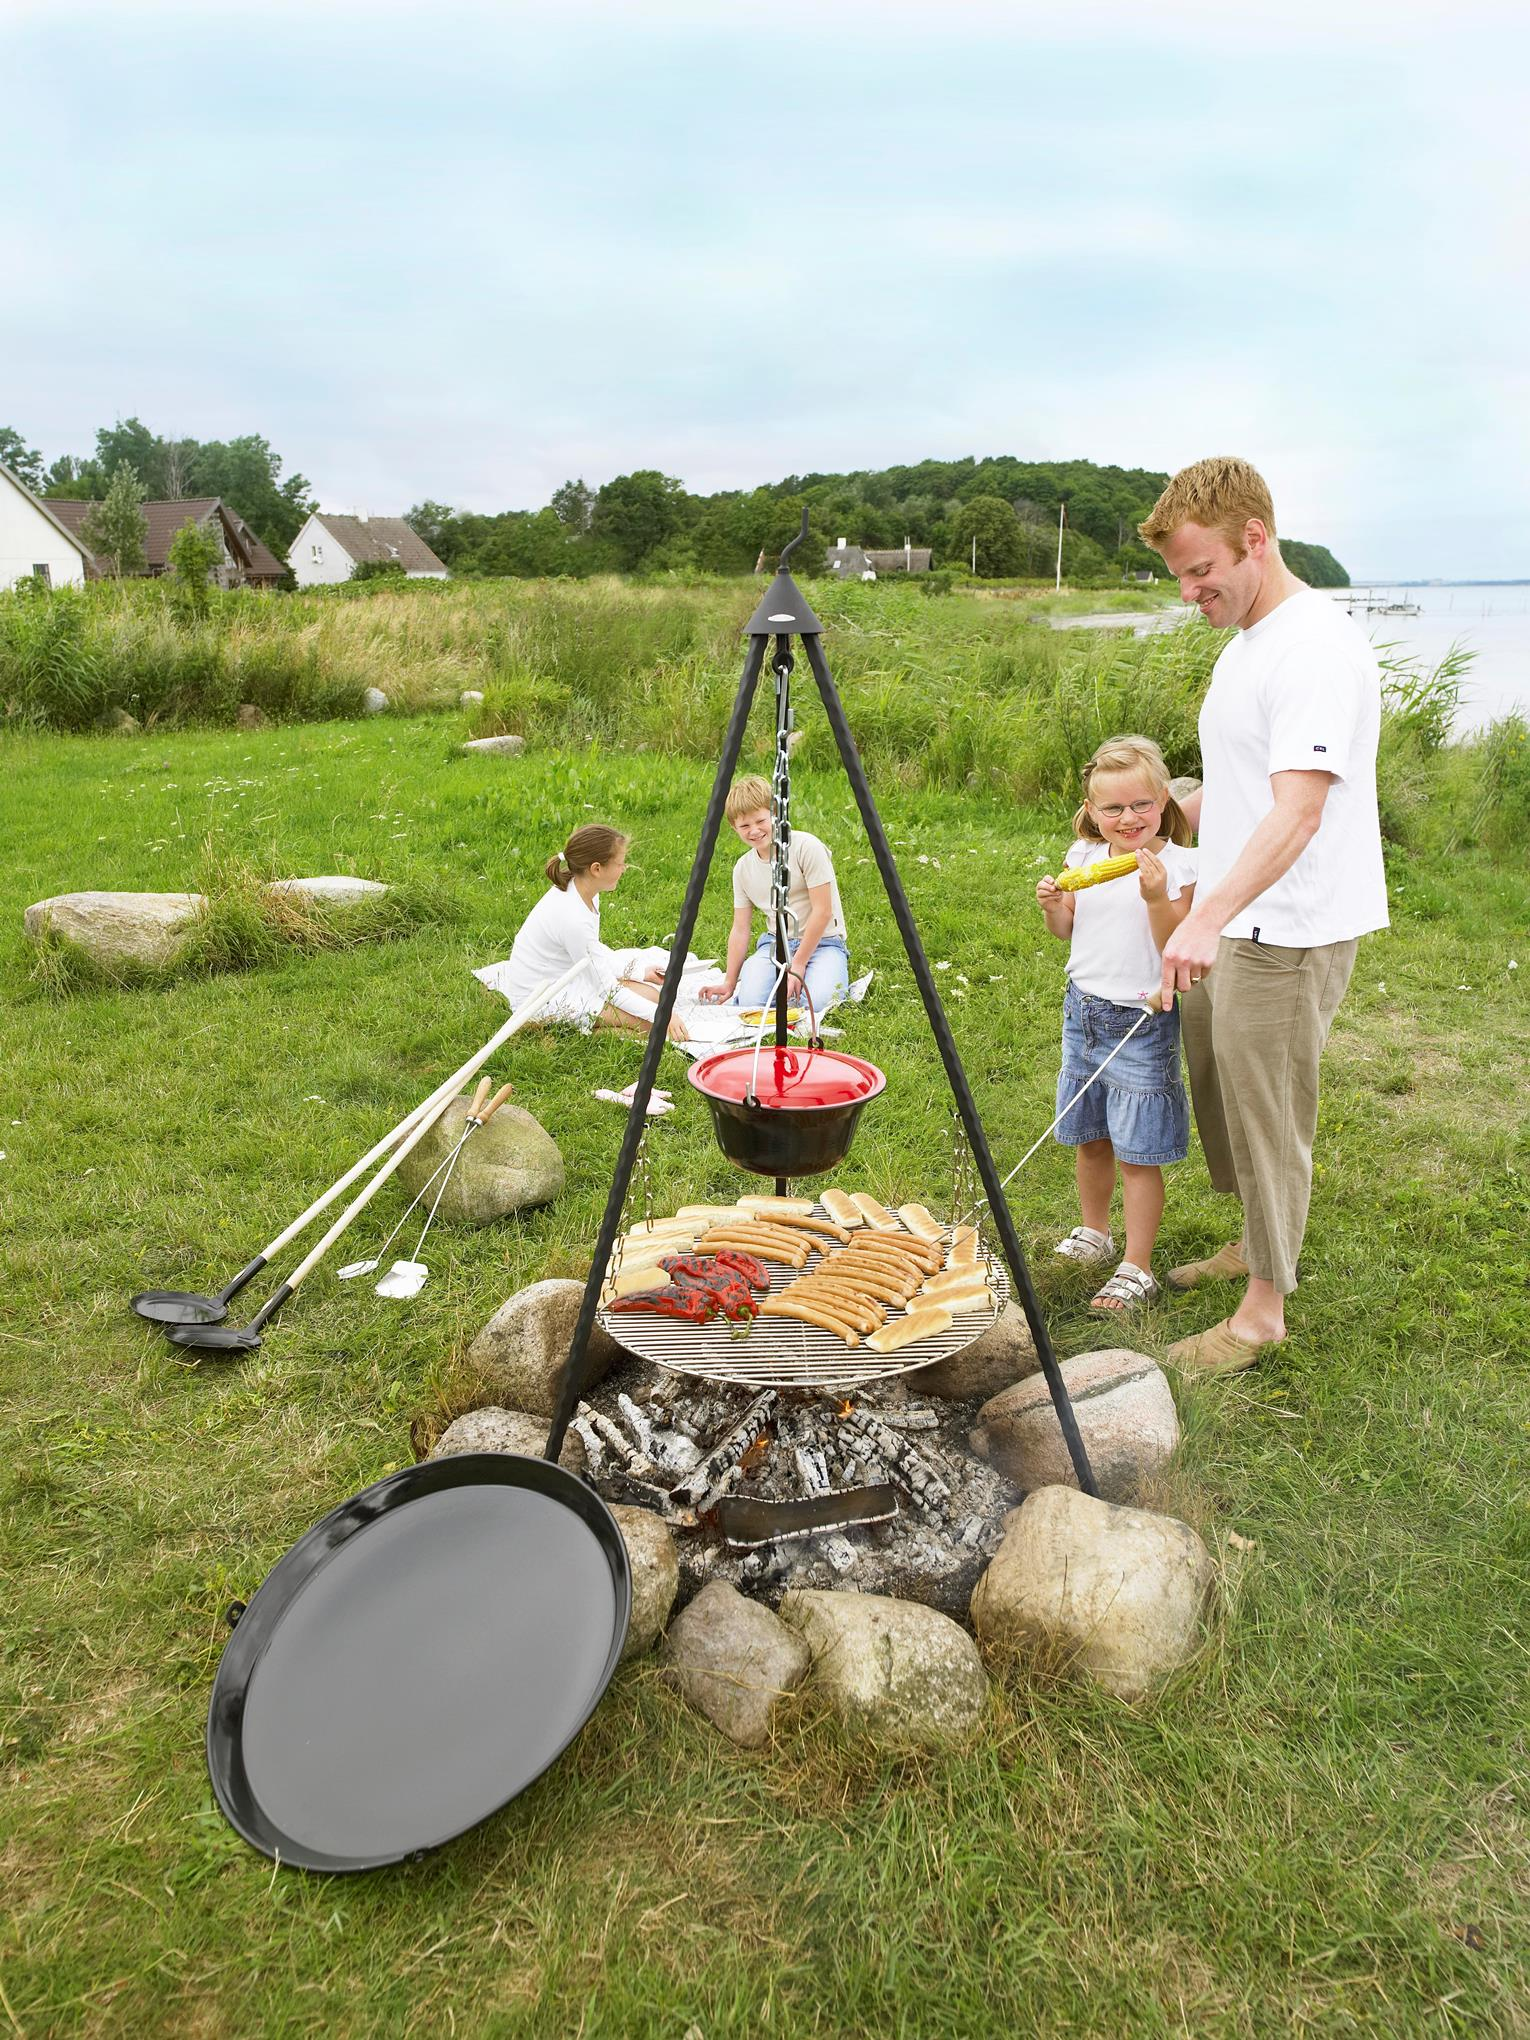 Bon-fire is for both children and grown-ups! Here Bon-fire Tripod with Grill grid, Stew pot and BBQ pan. On the side Pancake pans and mathing grill tools.